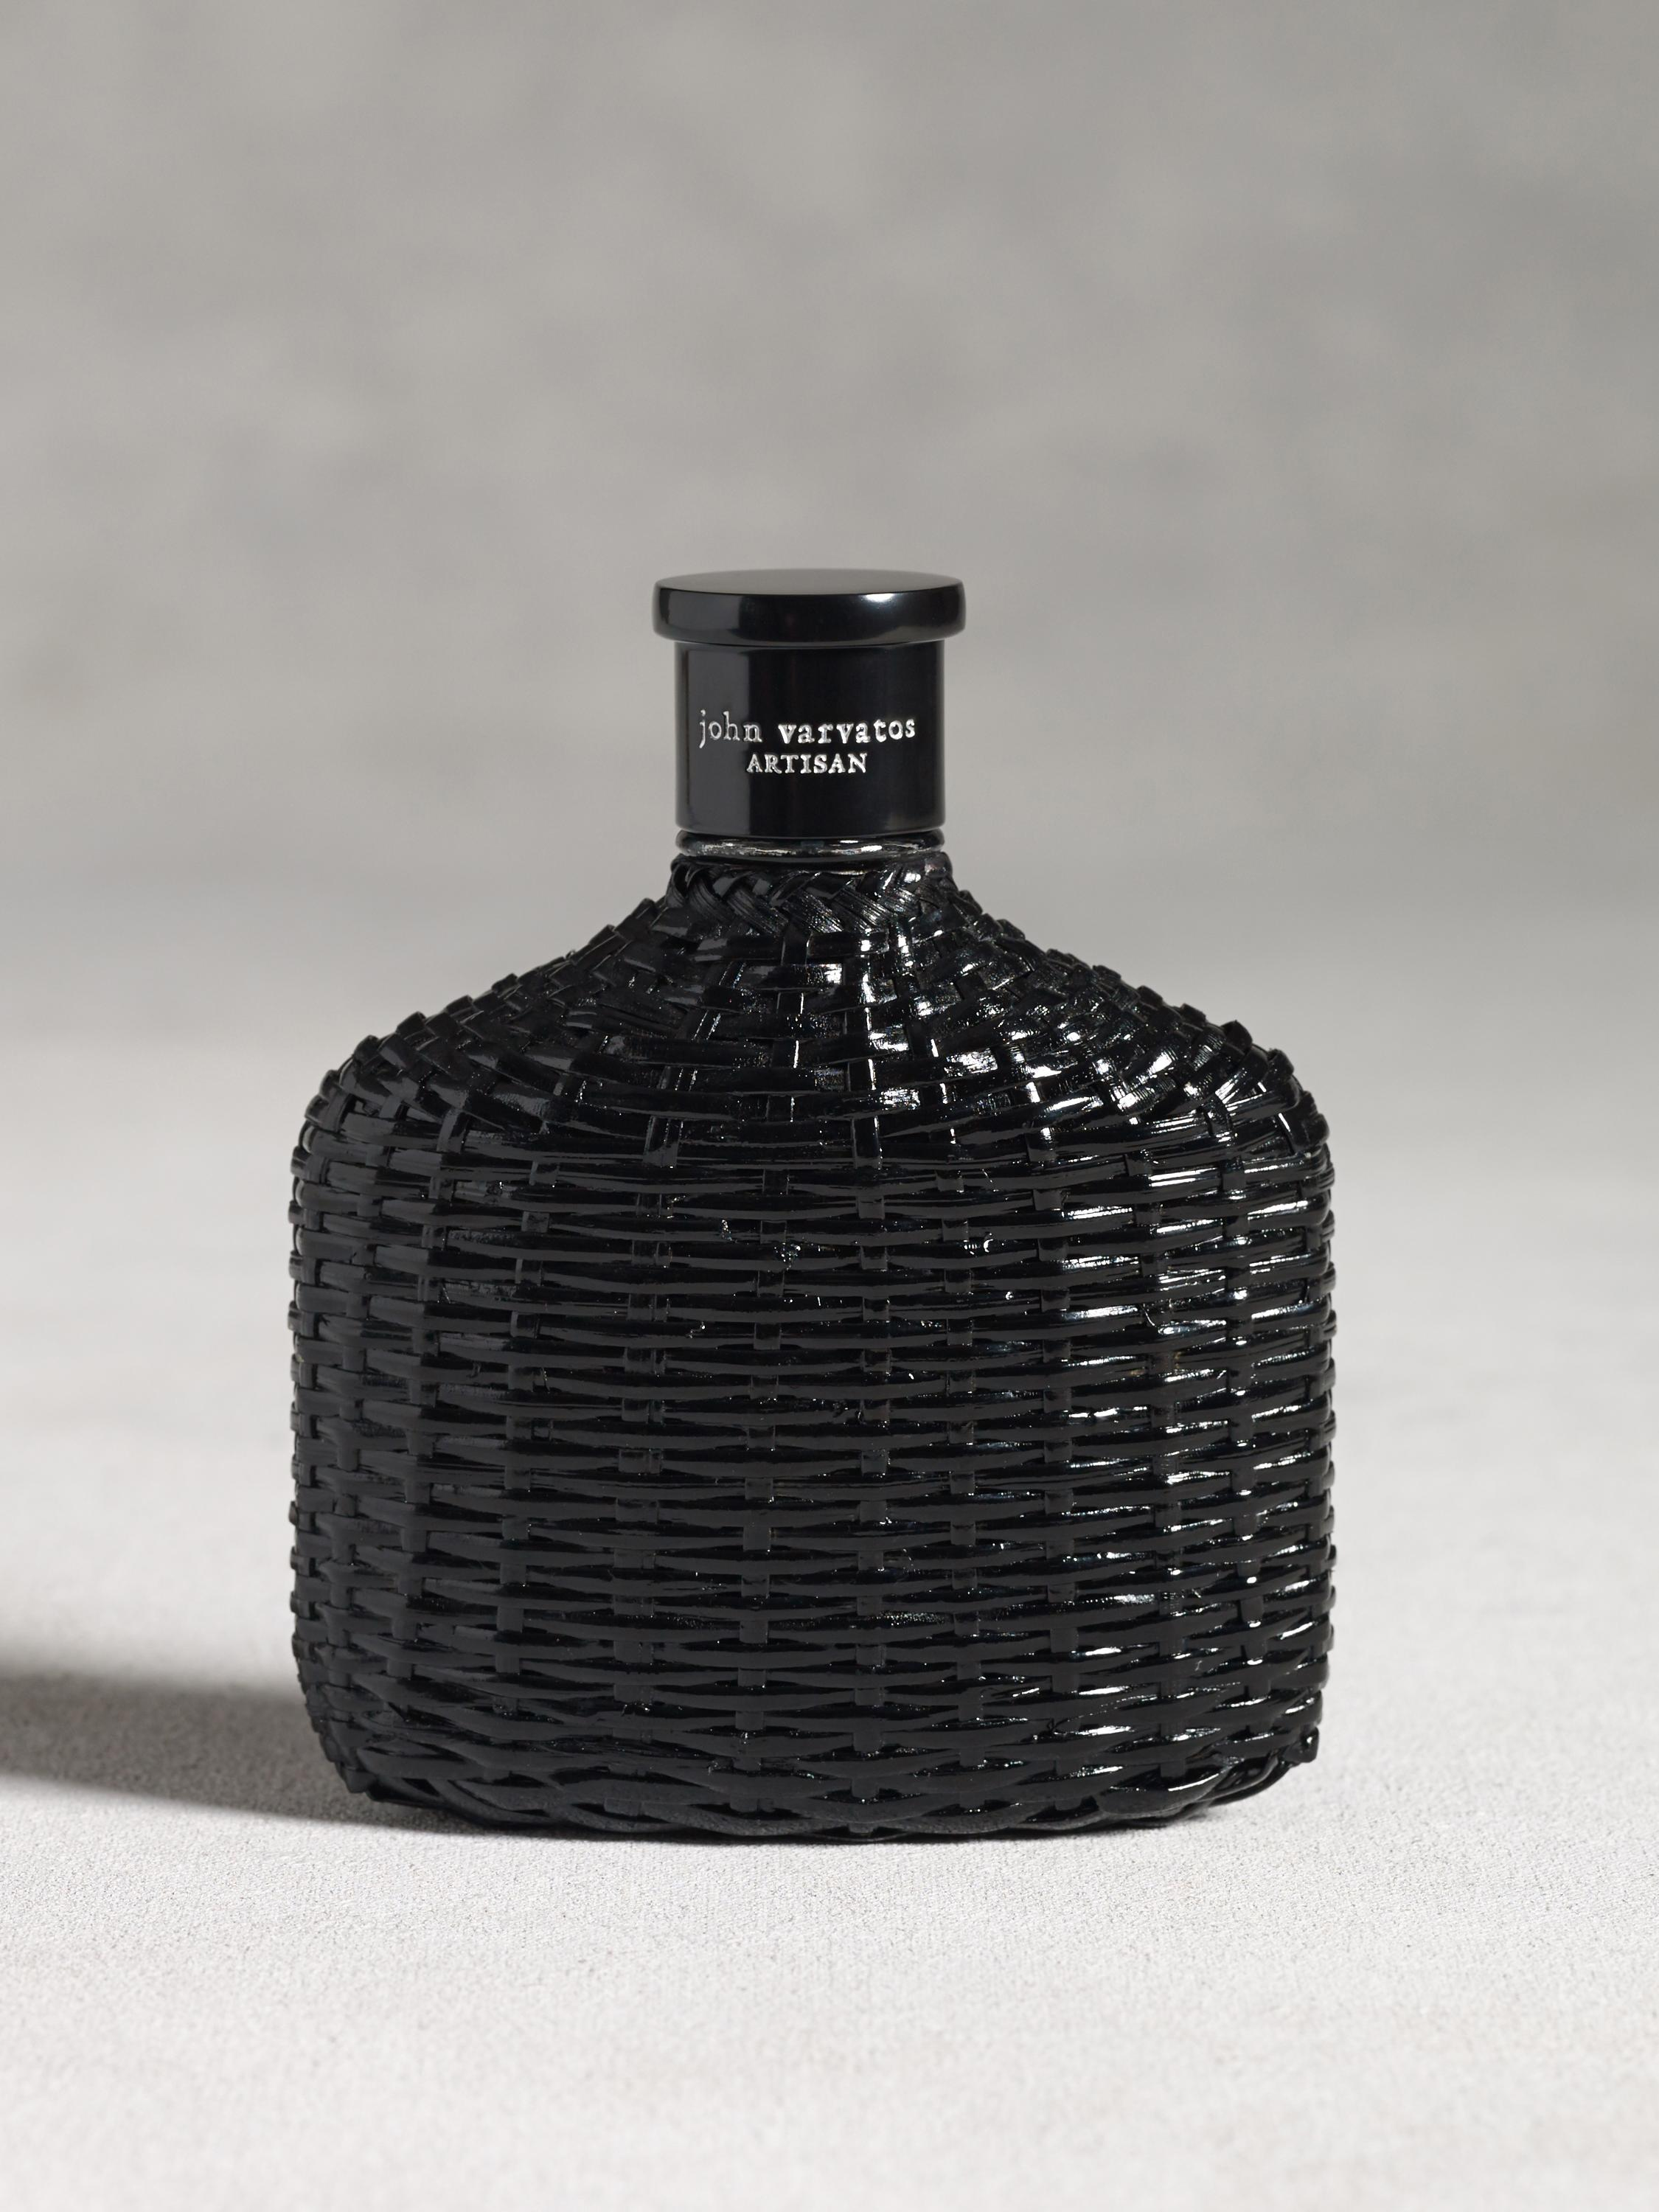 Artisan Black Fragrance 4.2 oz